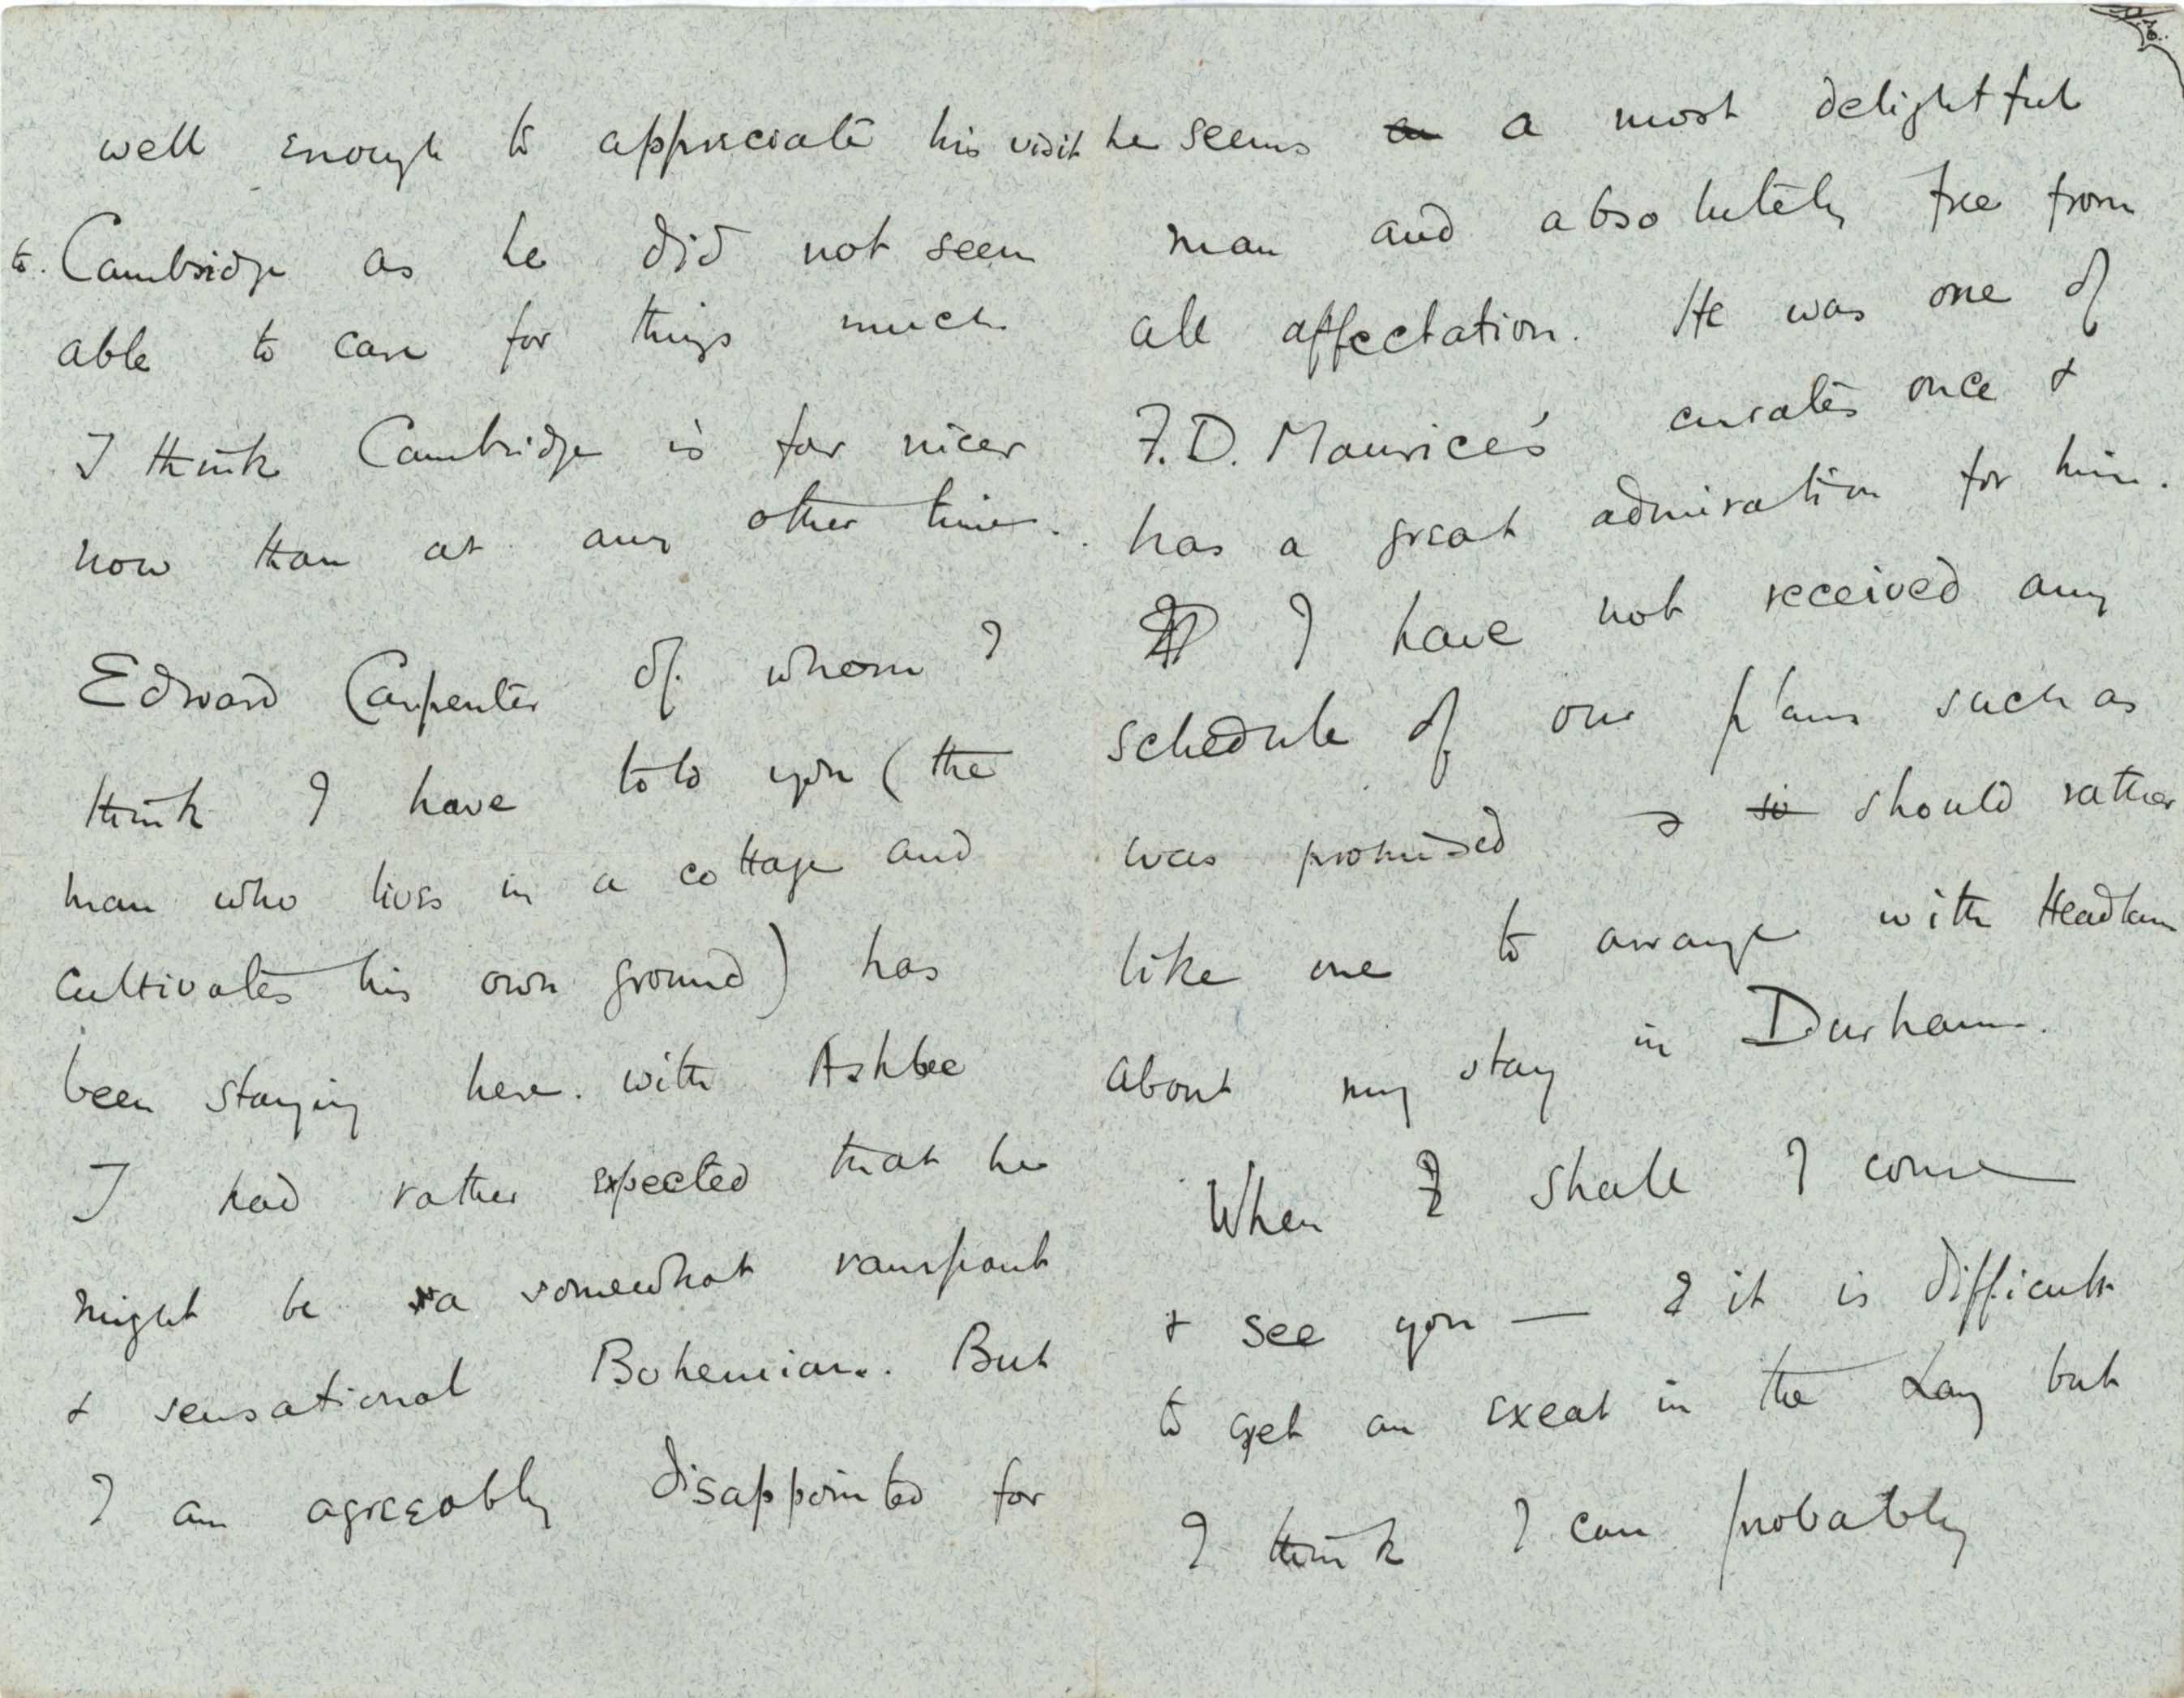 Part of a letter from Roger Fry to his mother, 25 July 1886, concerning Carpenter. [REF/3/57/23, iv 51 verso]